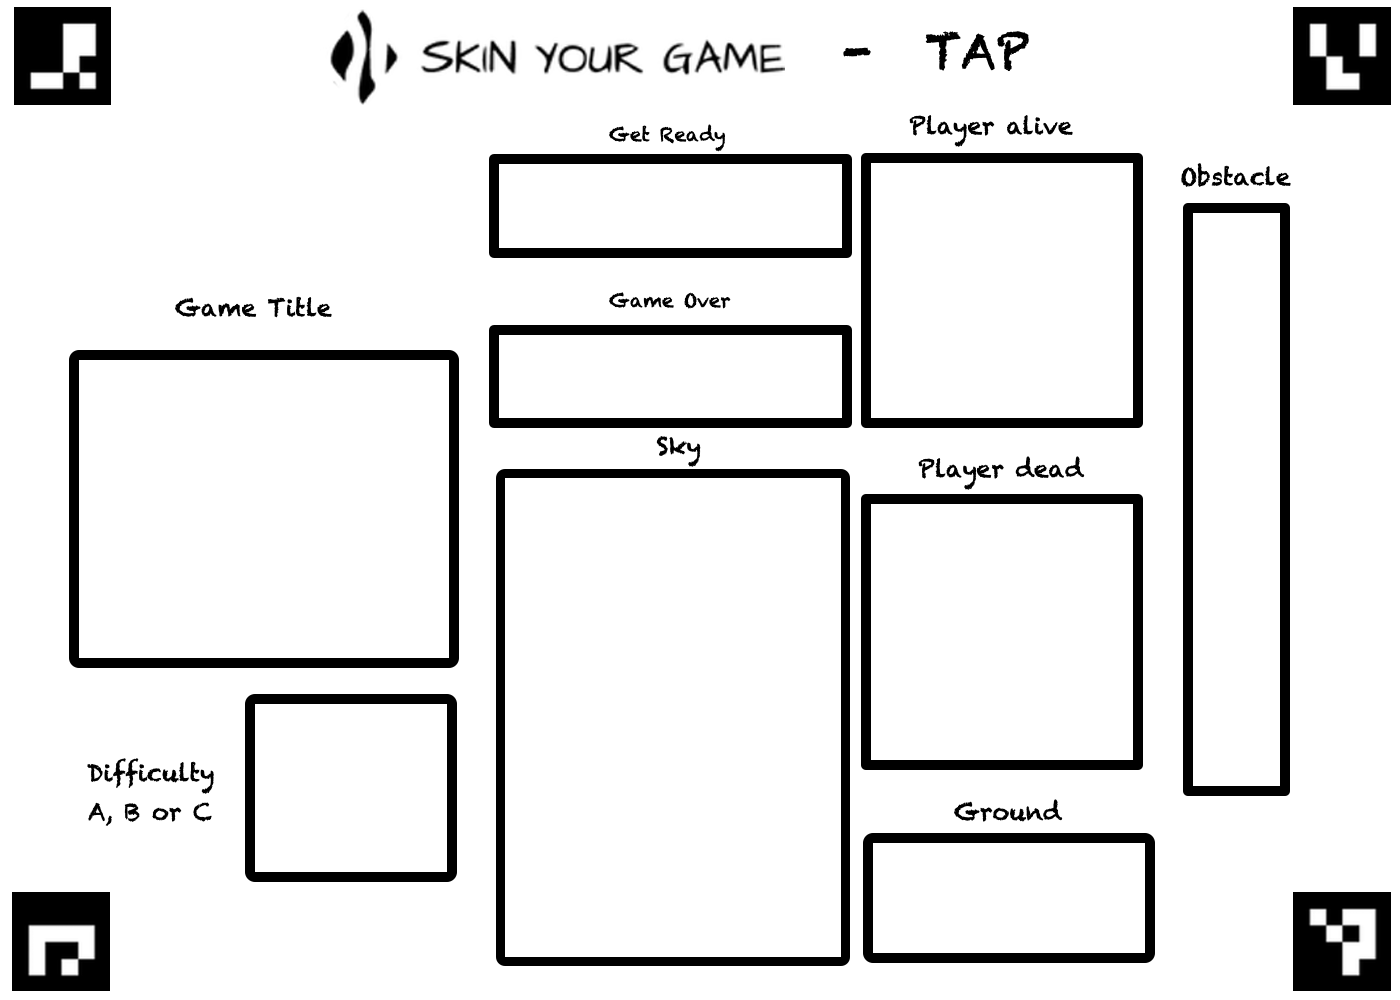 Skinyourgame-Tap Colorcard